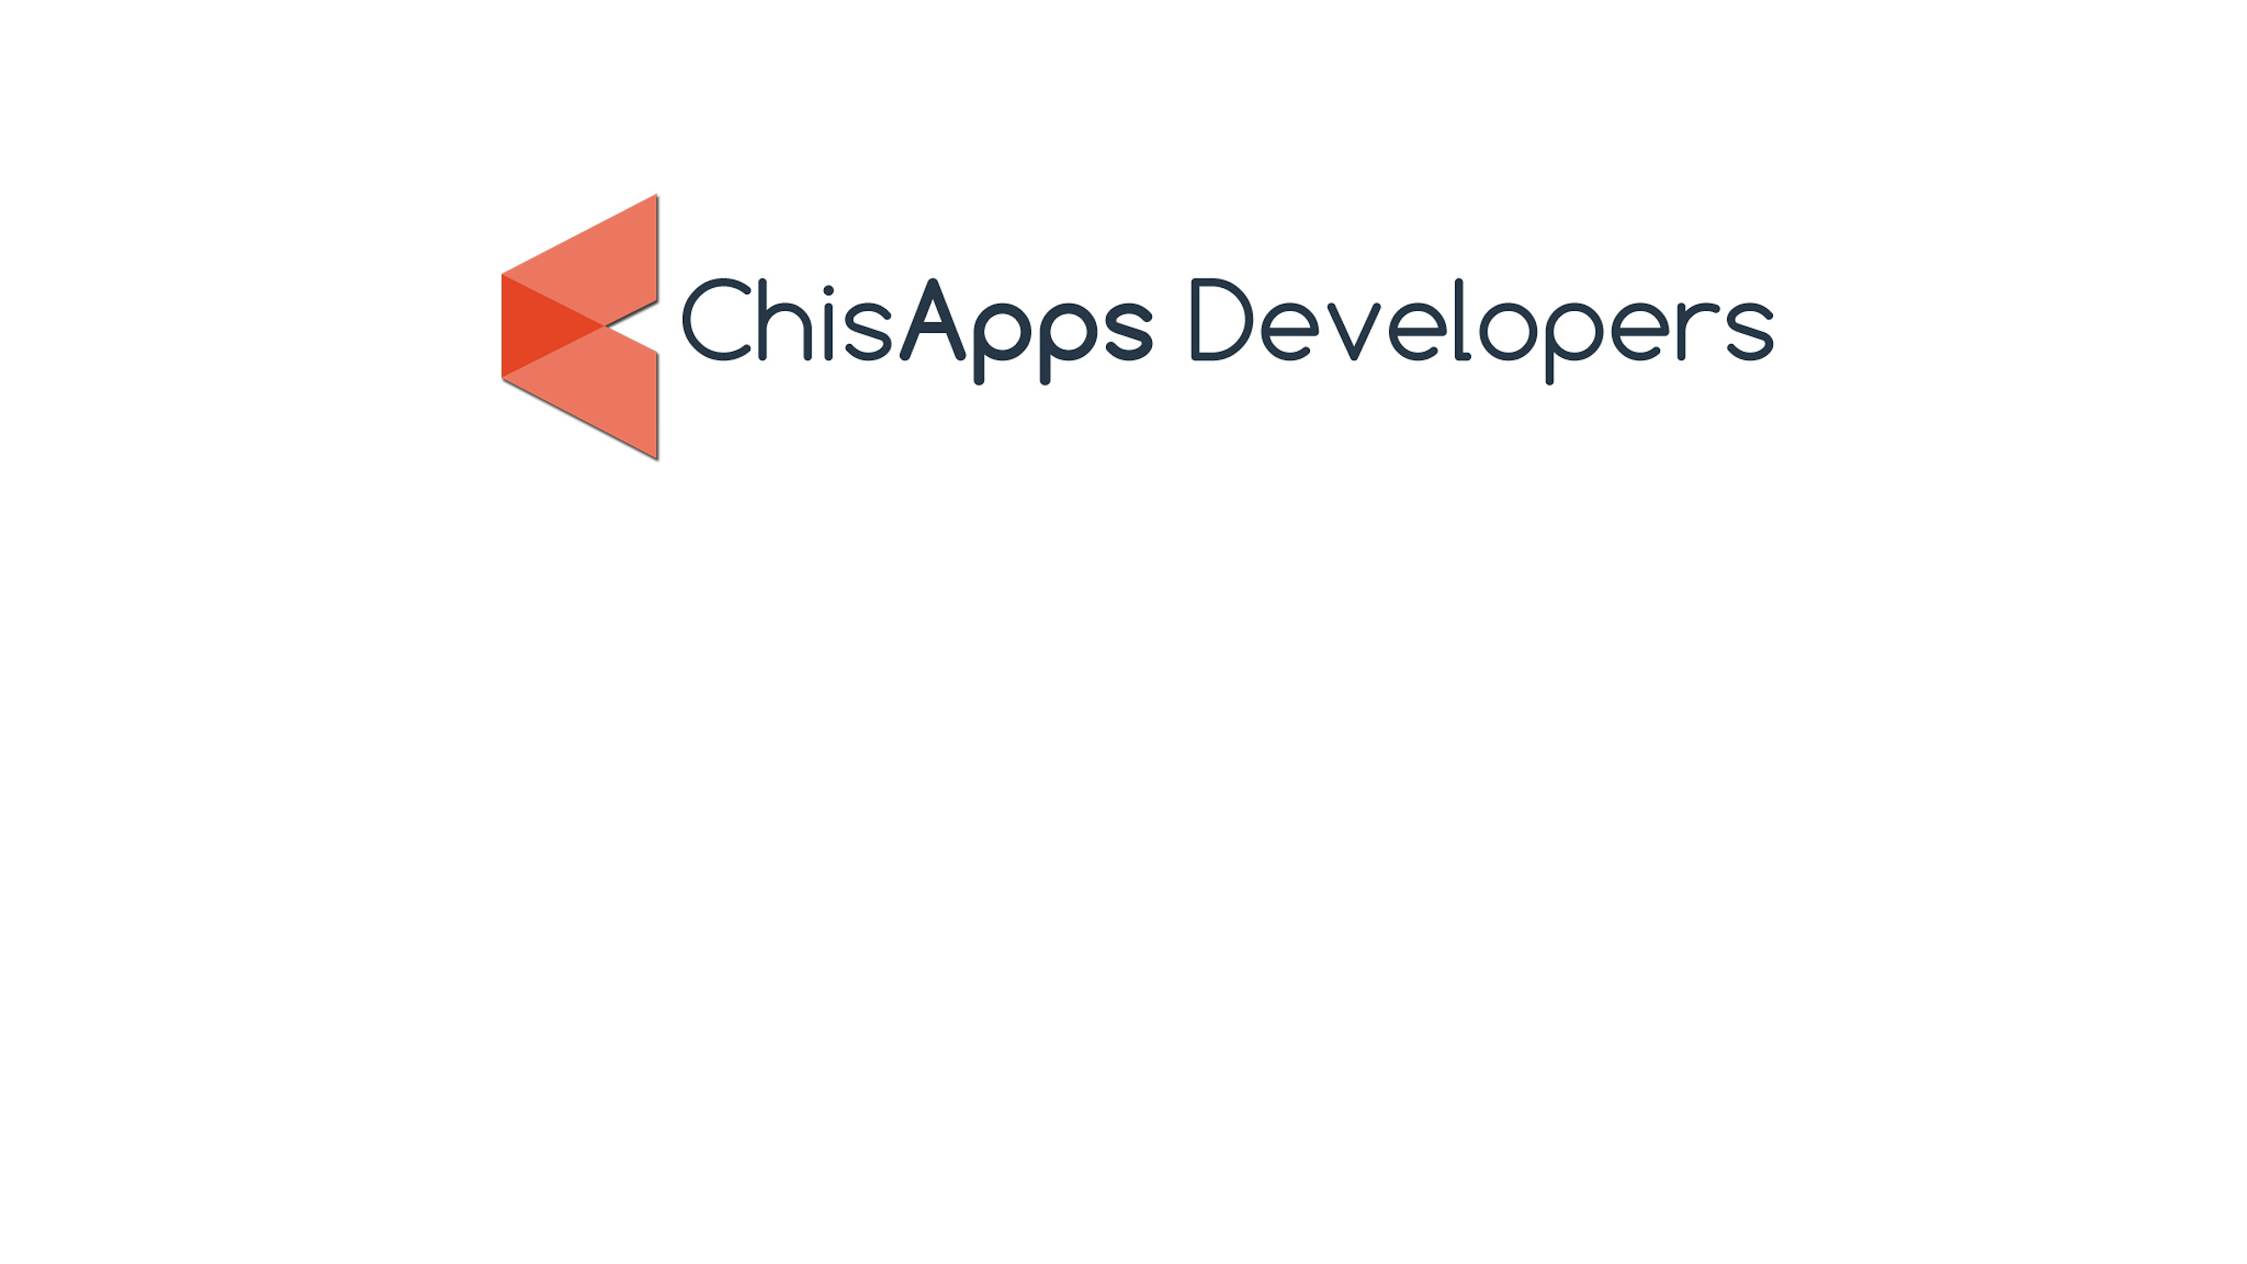 ChisApps Developers